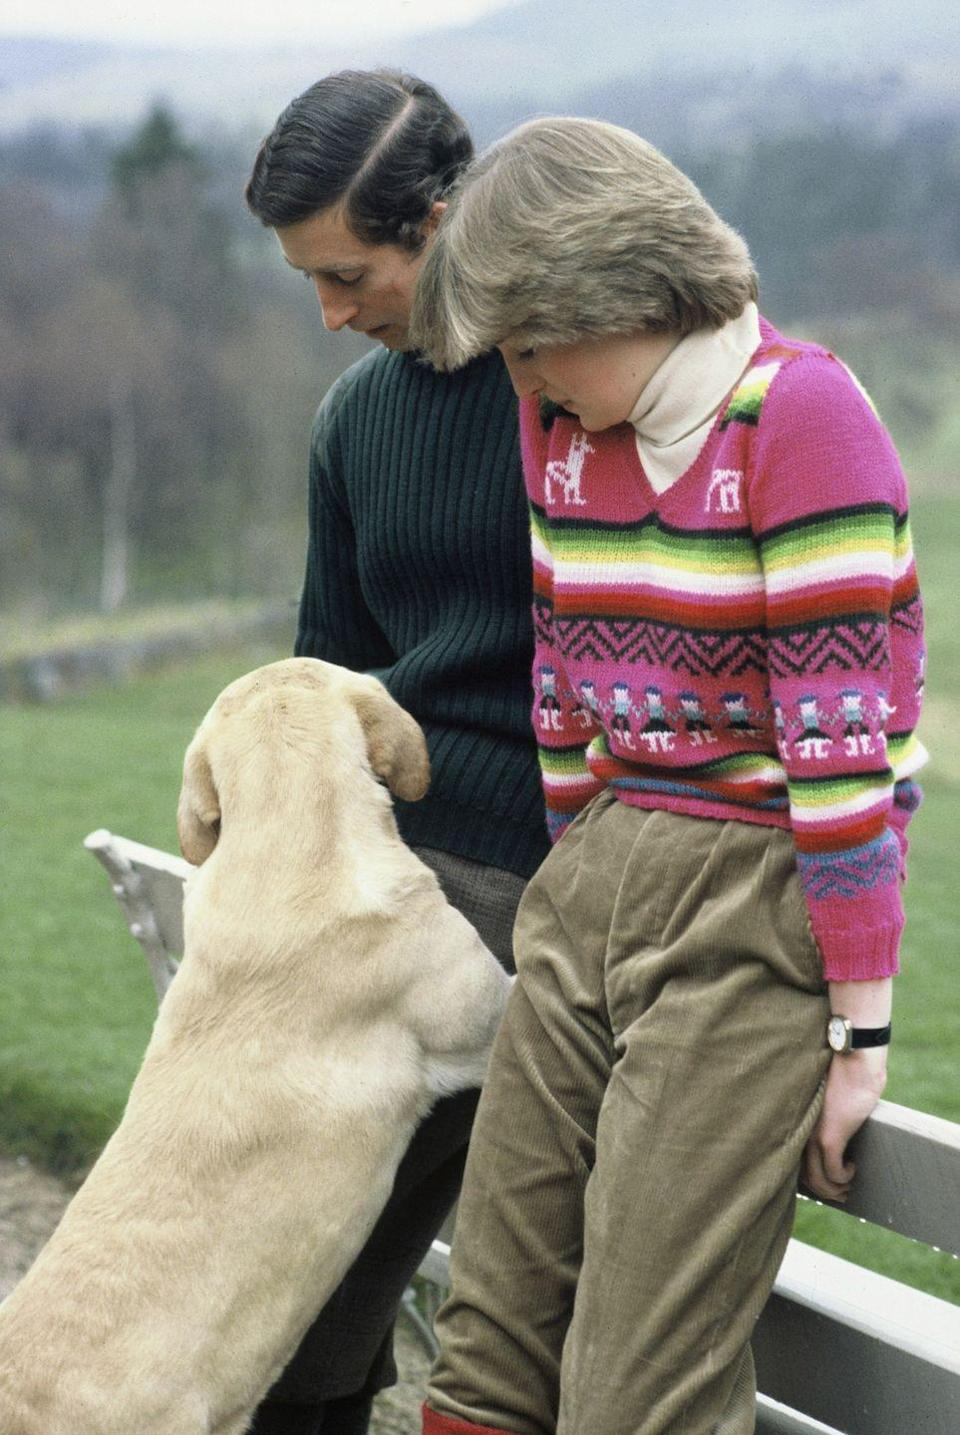 <p>Prince Charles and his fiancée, the future Princess Diana, spend time with his dog at on the Balmoral Estate.</p>